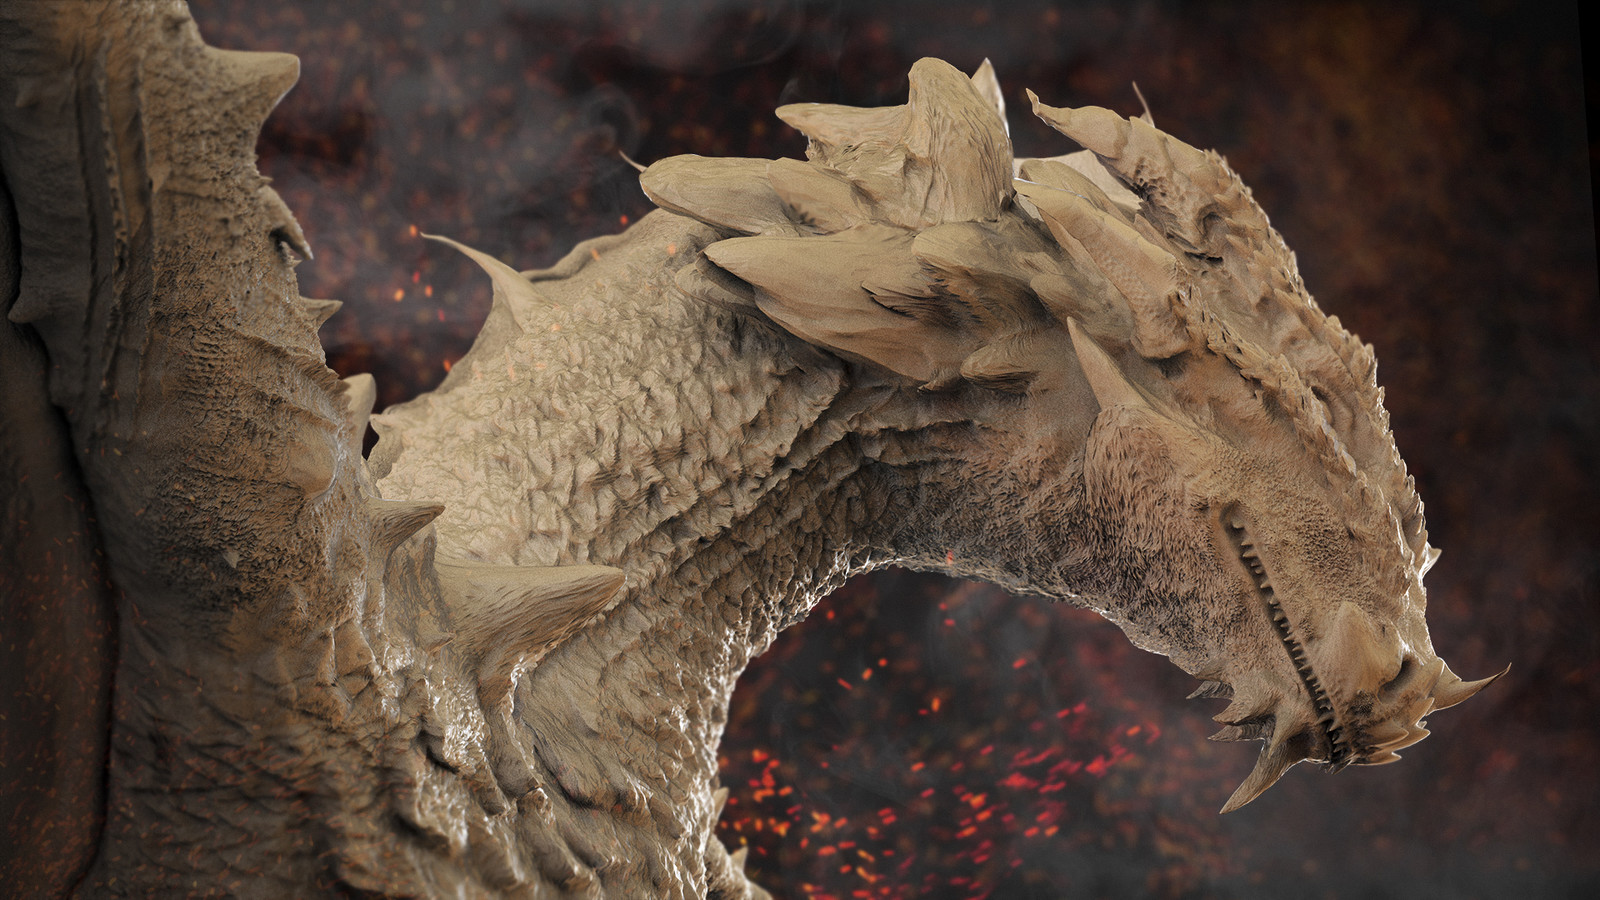 Wyvern 龙 - First Zbrush Sculpt